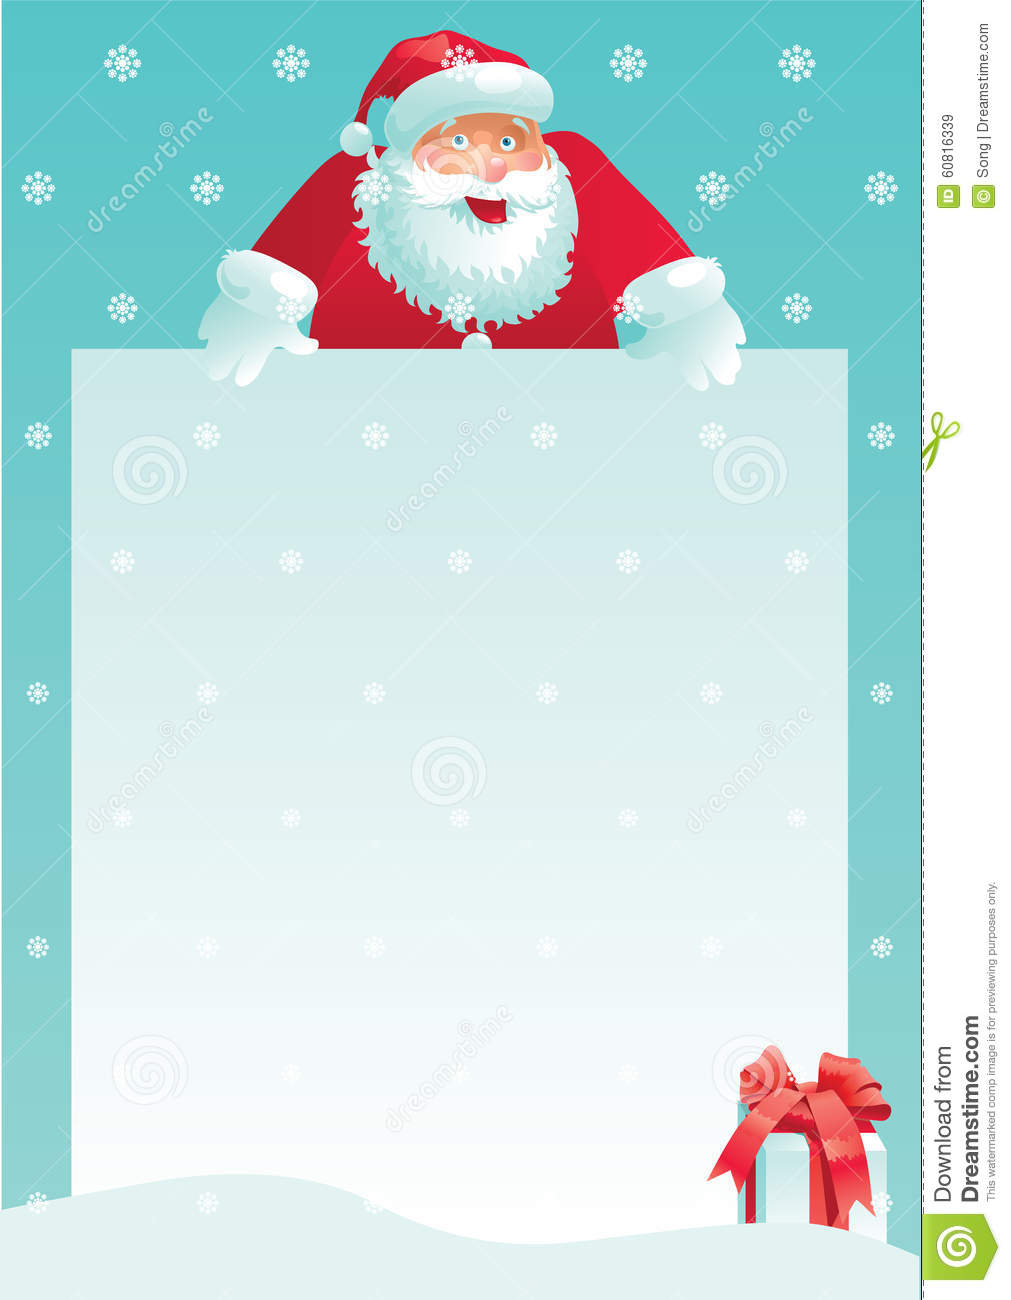 Santa claus and gift box with christmas letter stock vector santa claus and gift box with christmas letter spiritdancerdesigns Images